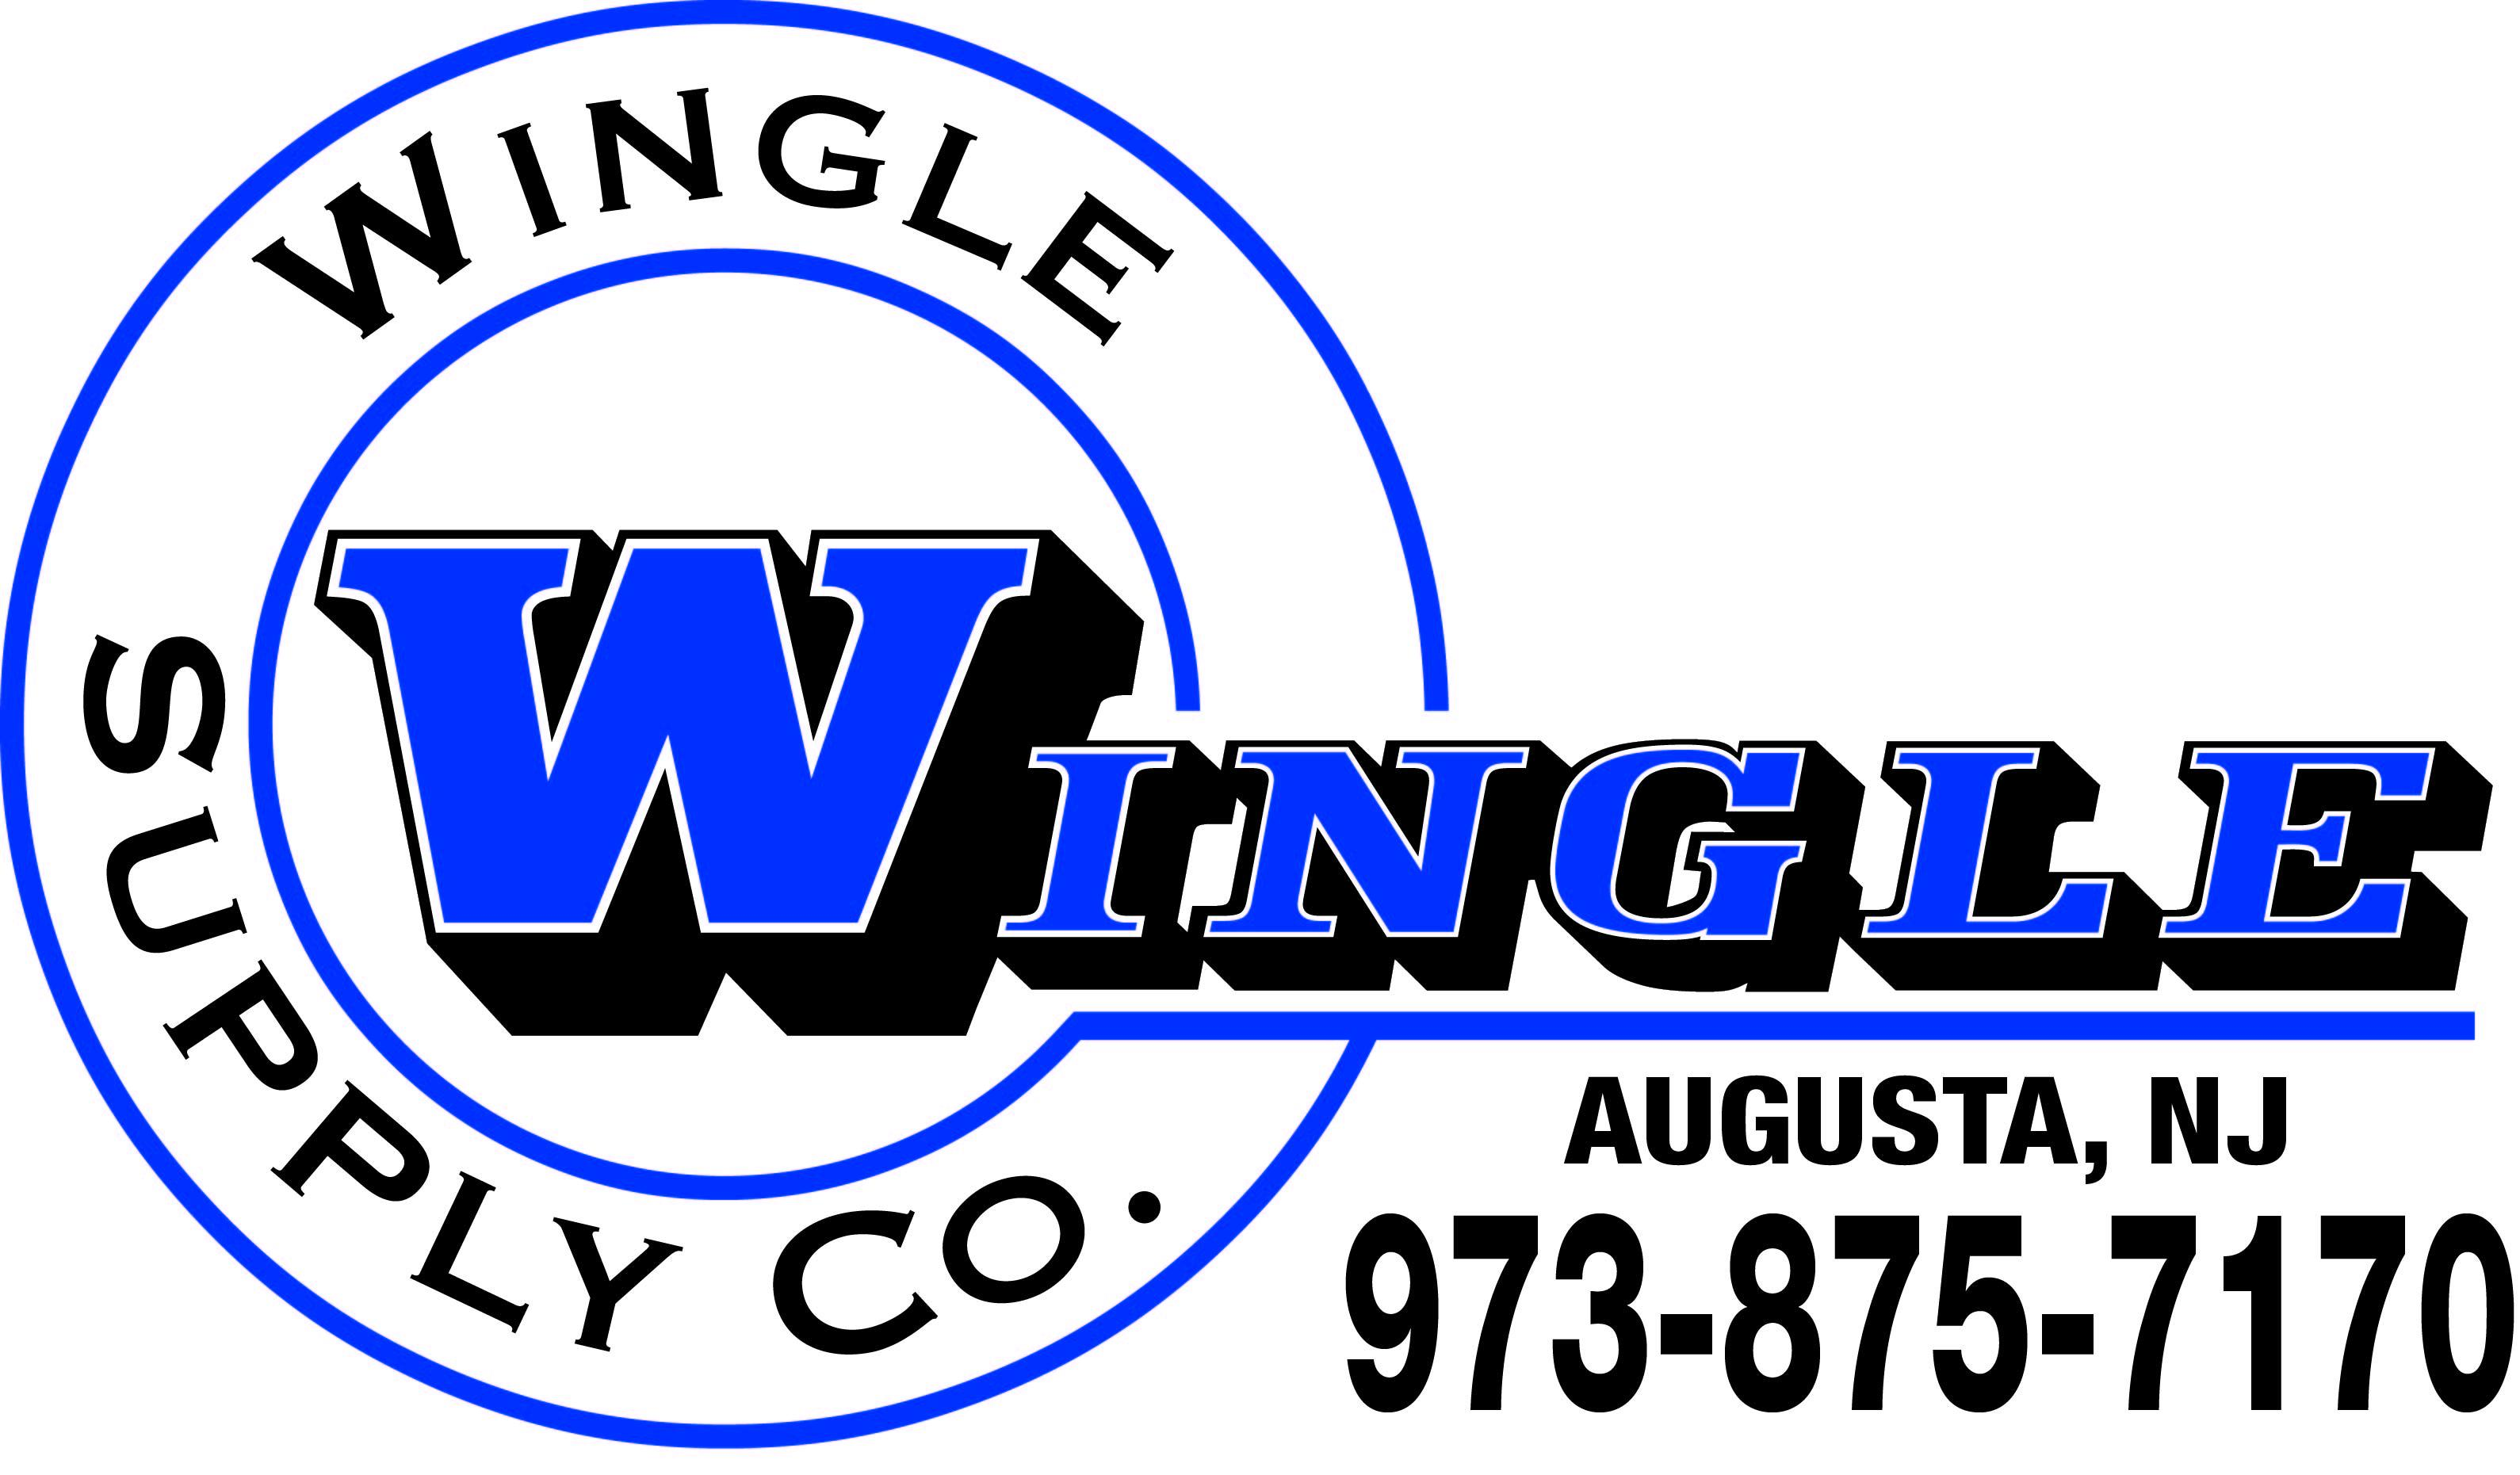 Wingle Supply Co. in Augusta, Sussex County NJ